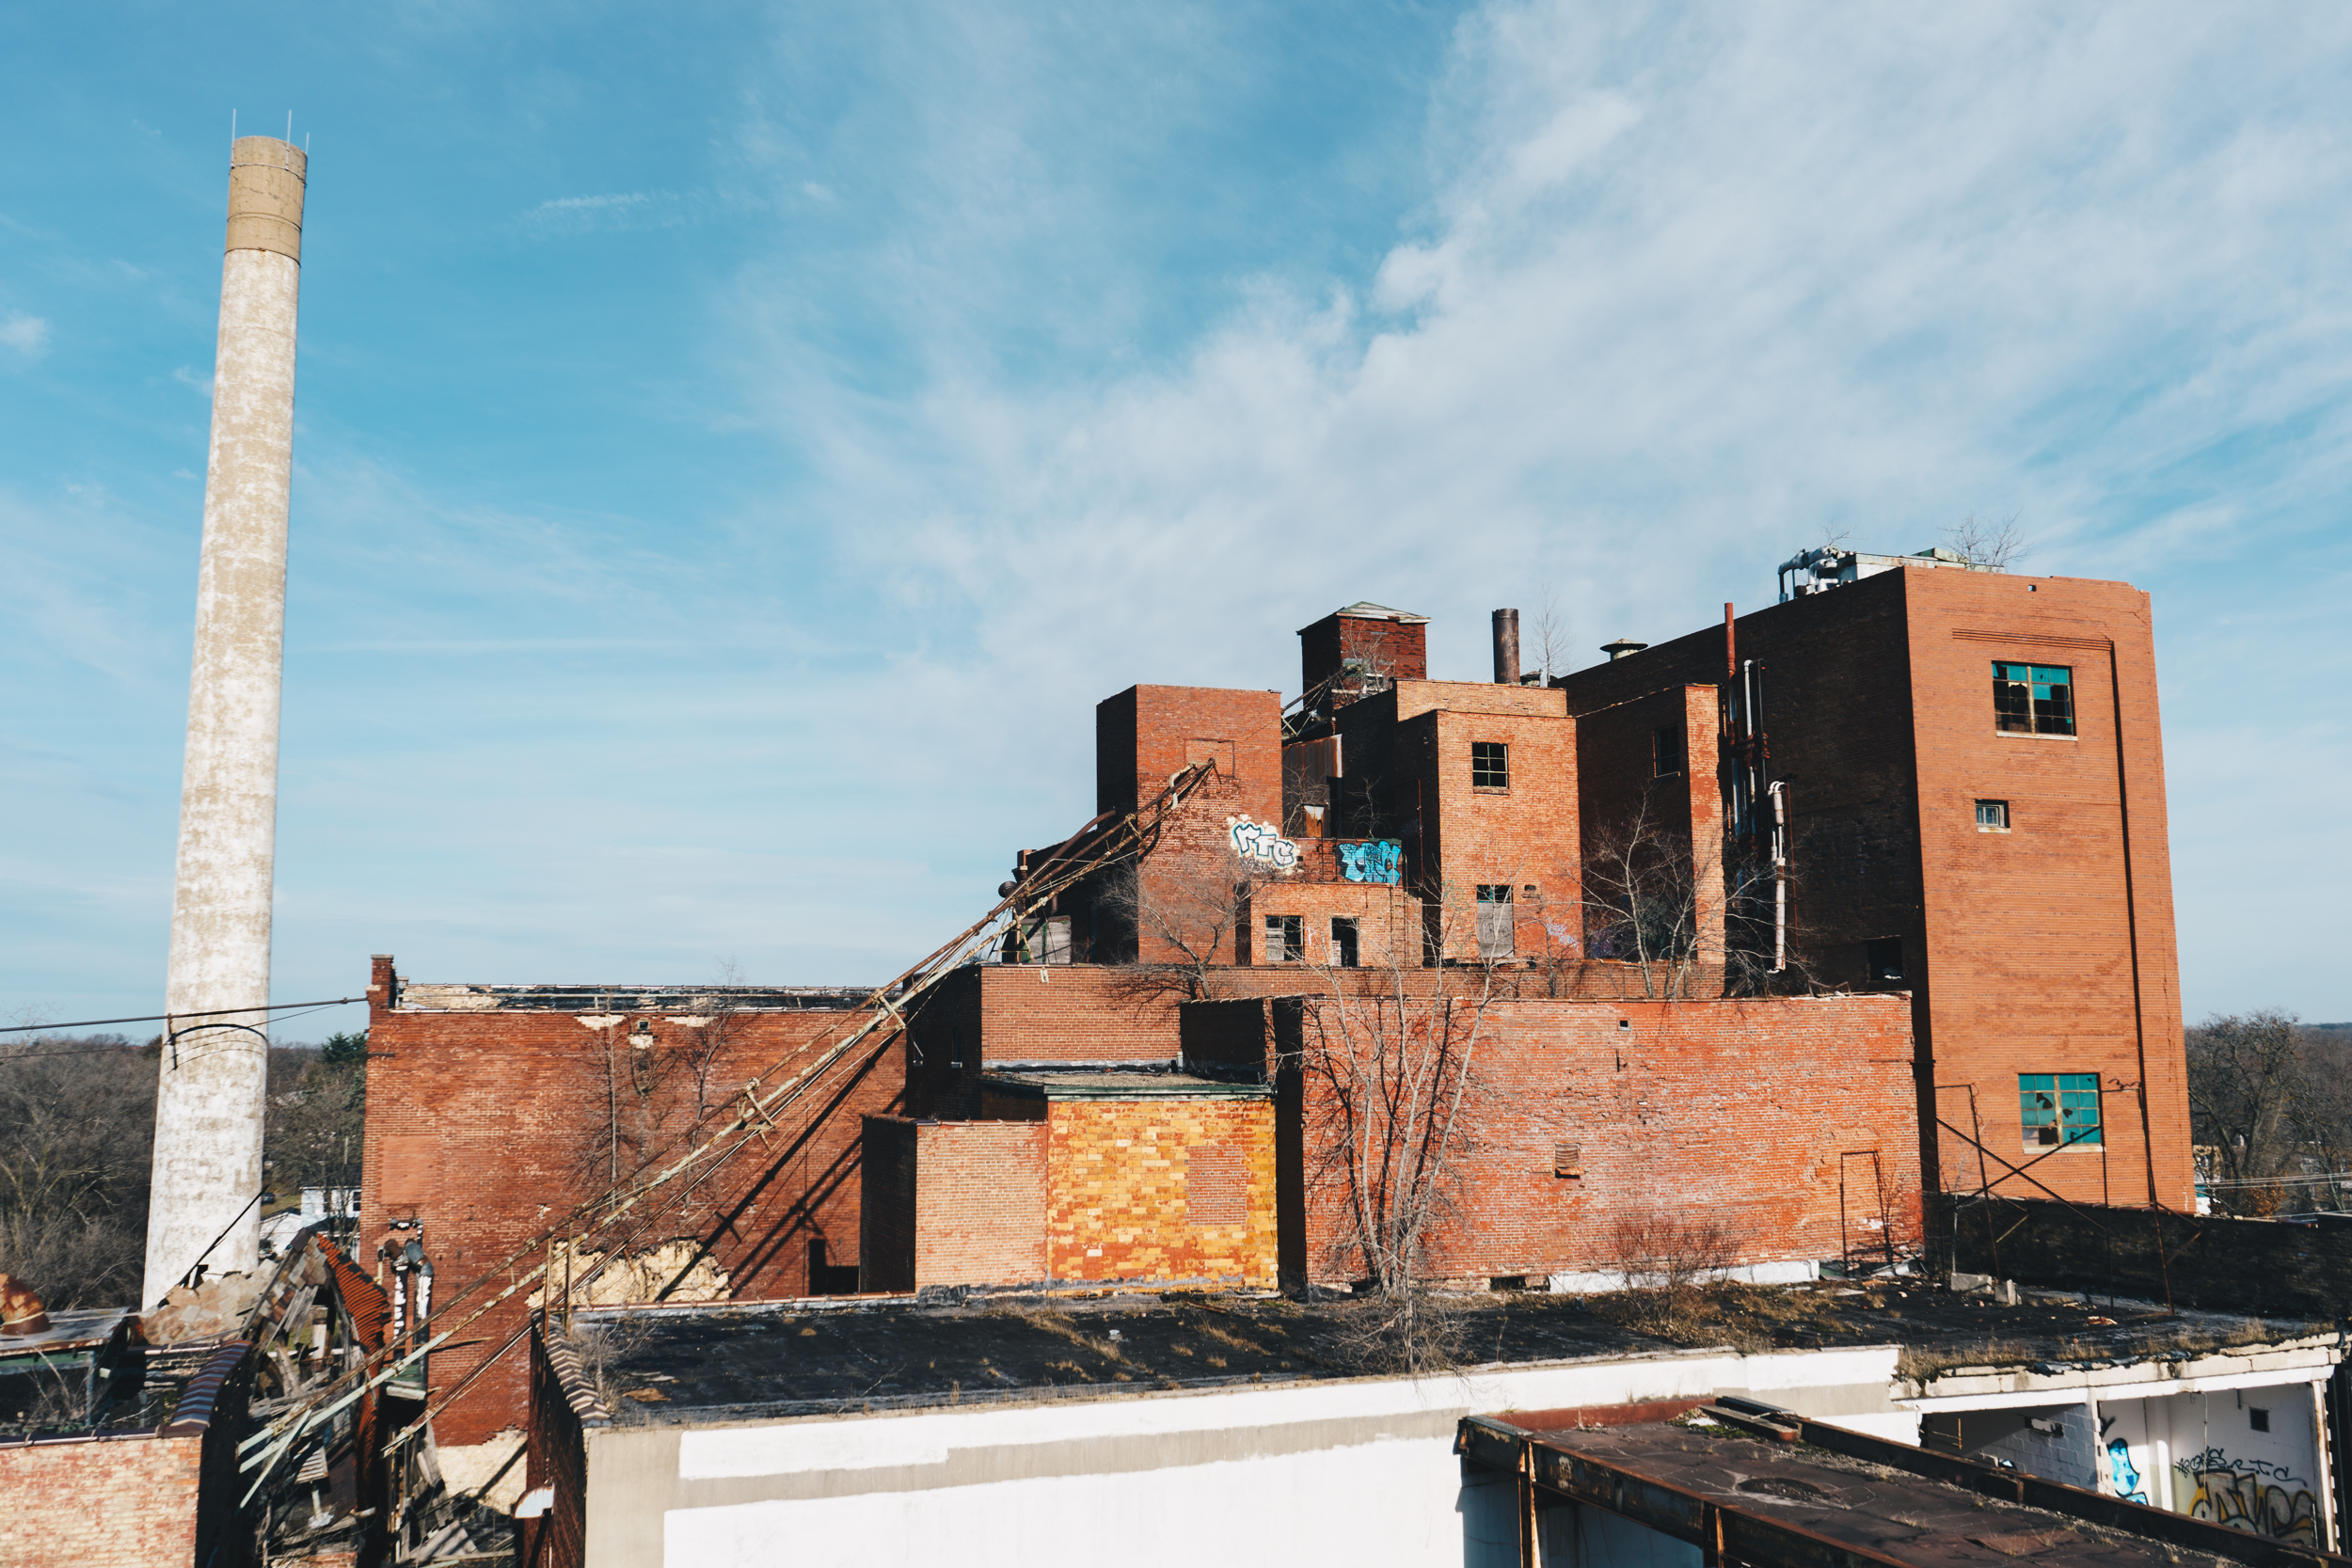 Drewry's No. 1   A rooftop view of the main brewing building of the since-demolished Muessel–Drewry's Brewery on the North West side of South Bend. This photograph was featured in our January 2017 story  Drewry's Brewery .